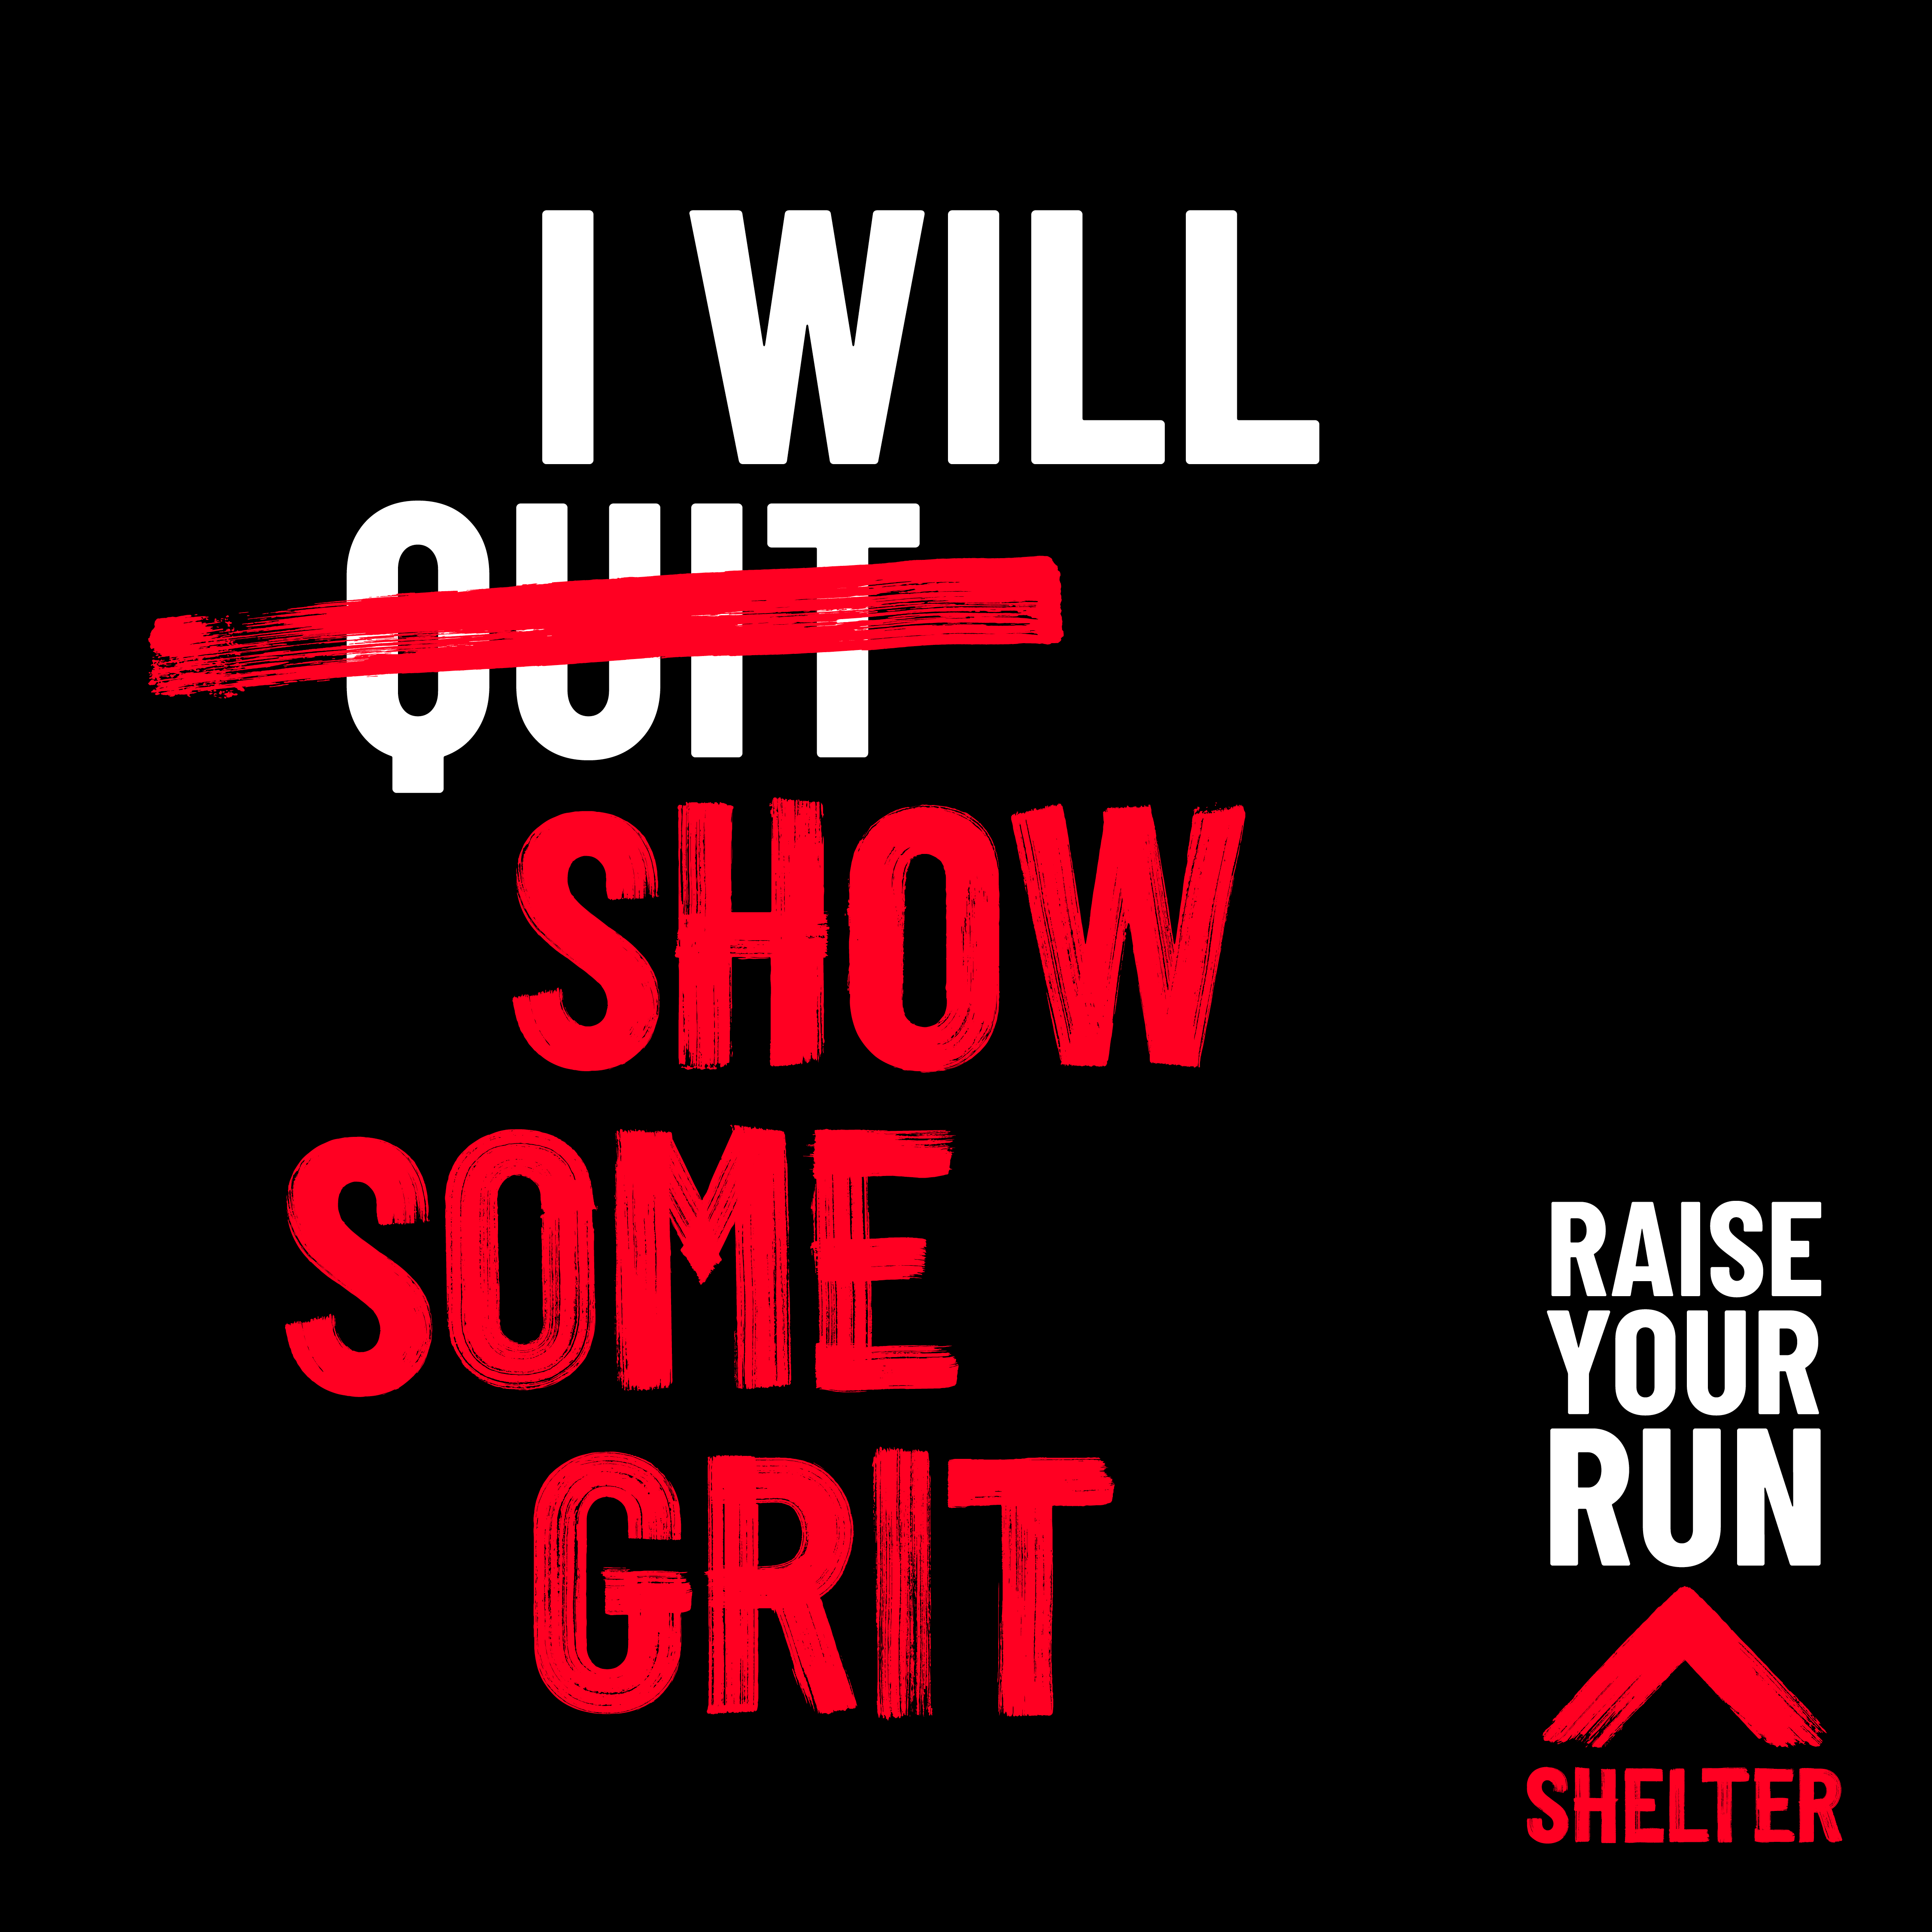 'I will show some grit' words on black background'